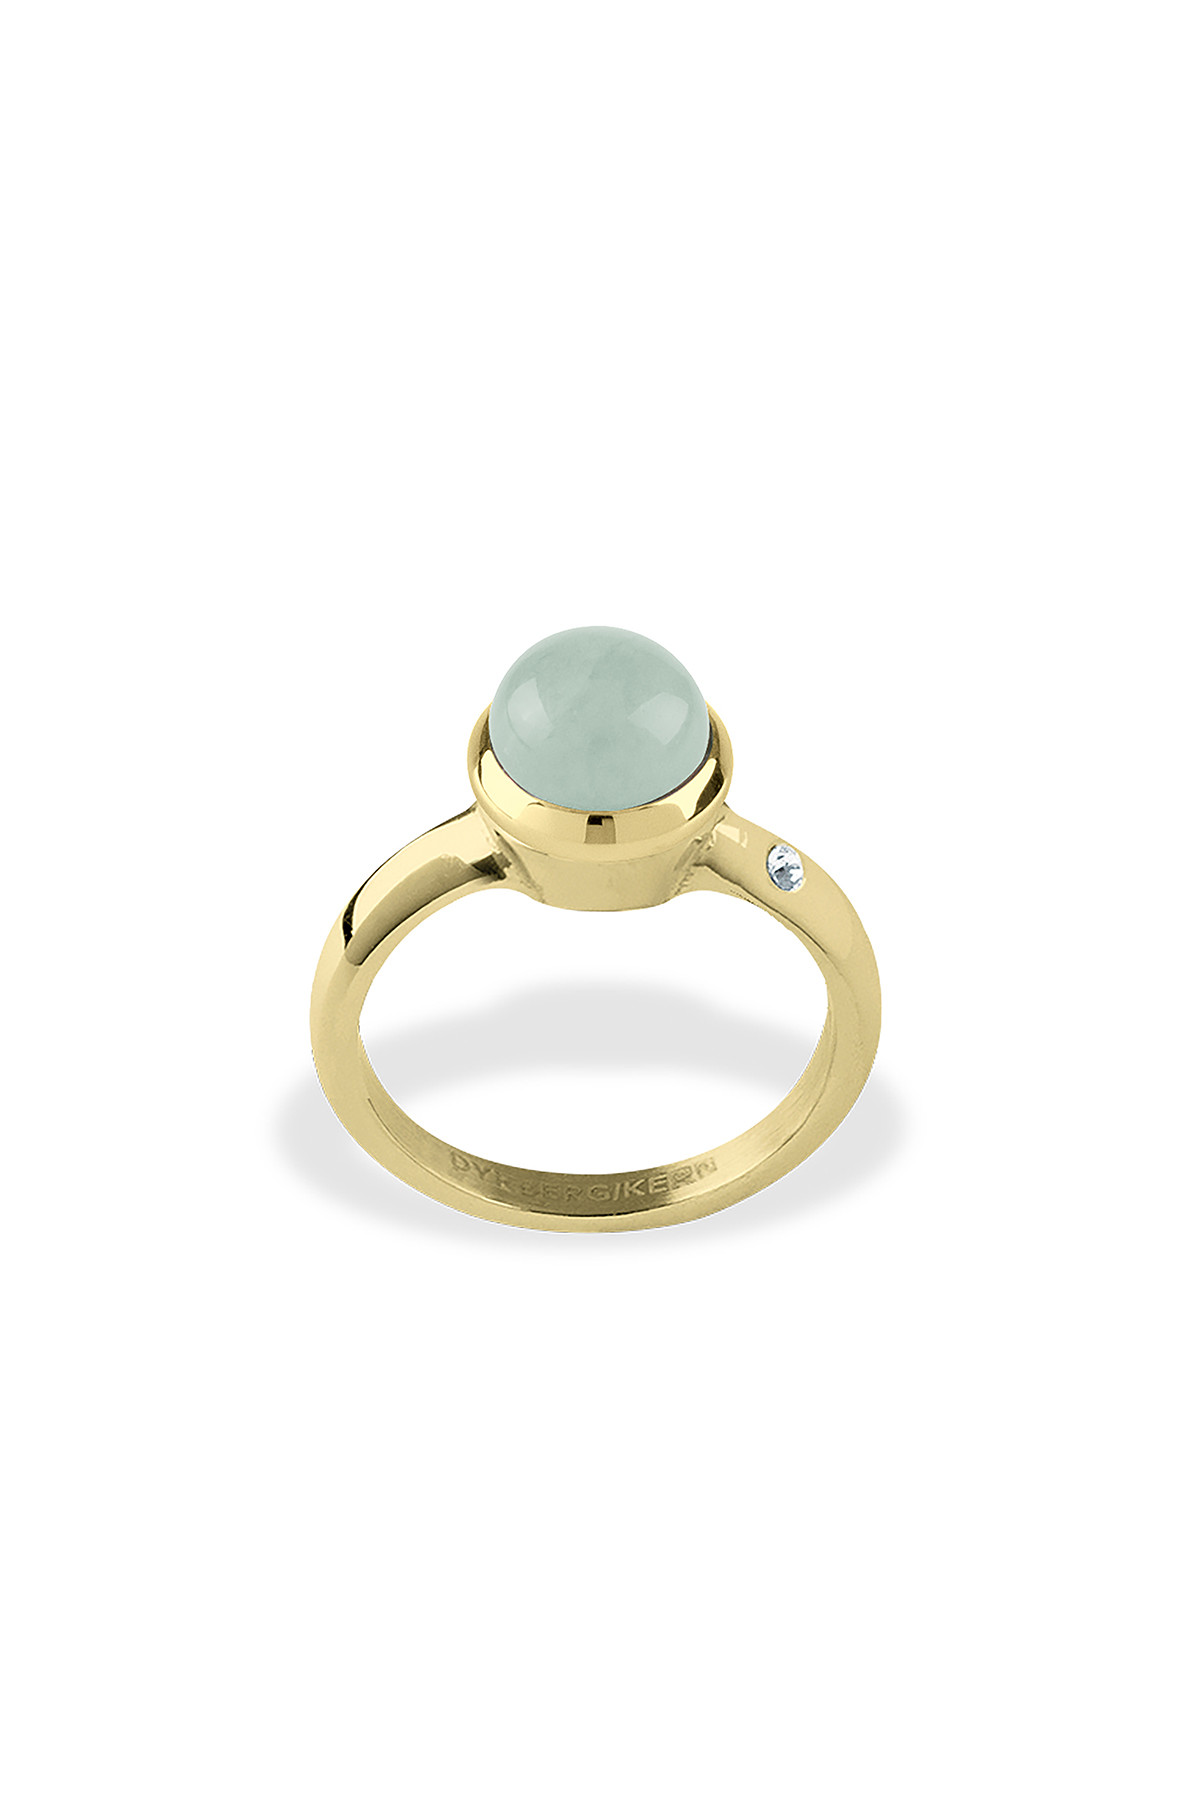 Image of   DYRBERG/KERN BUDRING RING 352333 (Gold, Green, I/51)